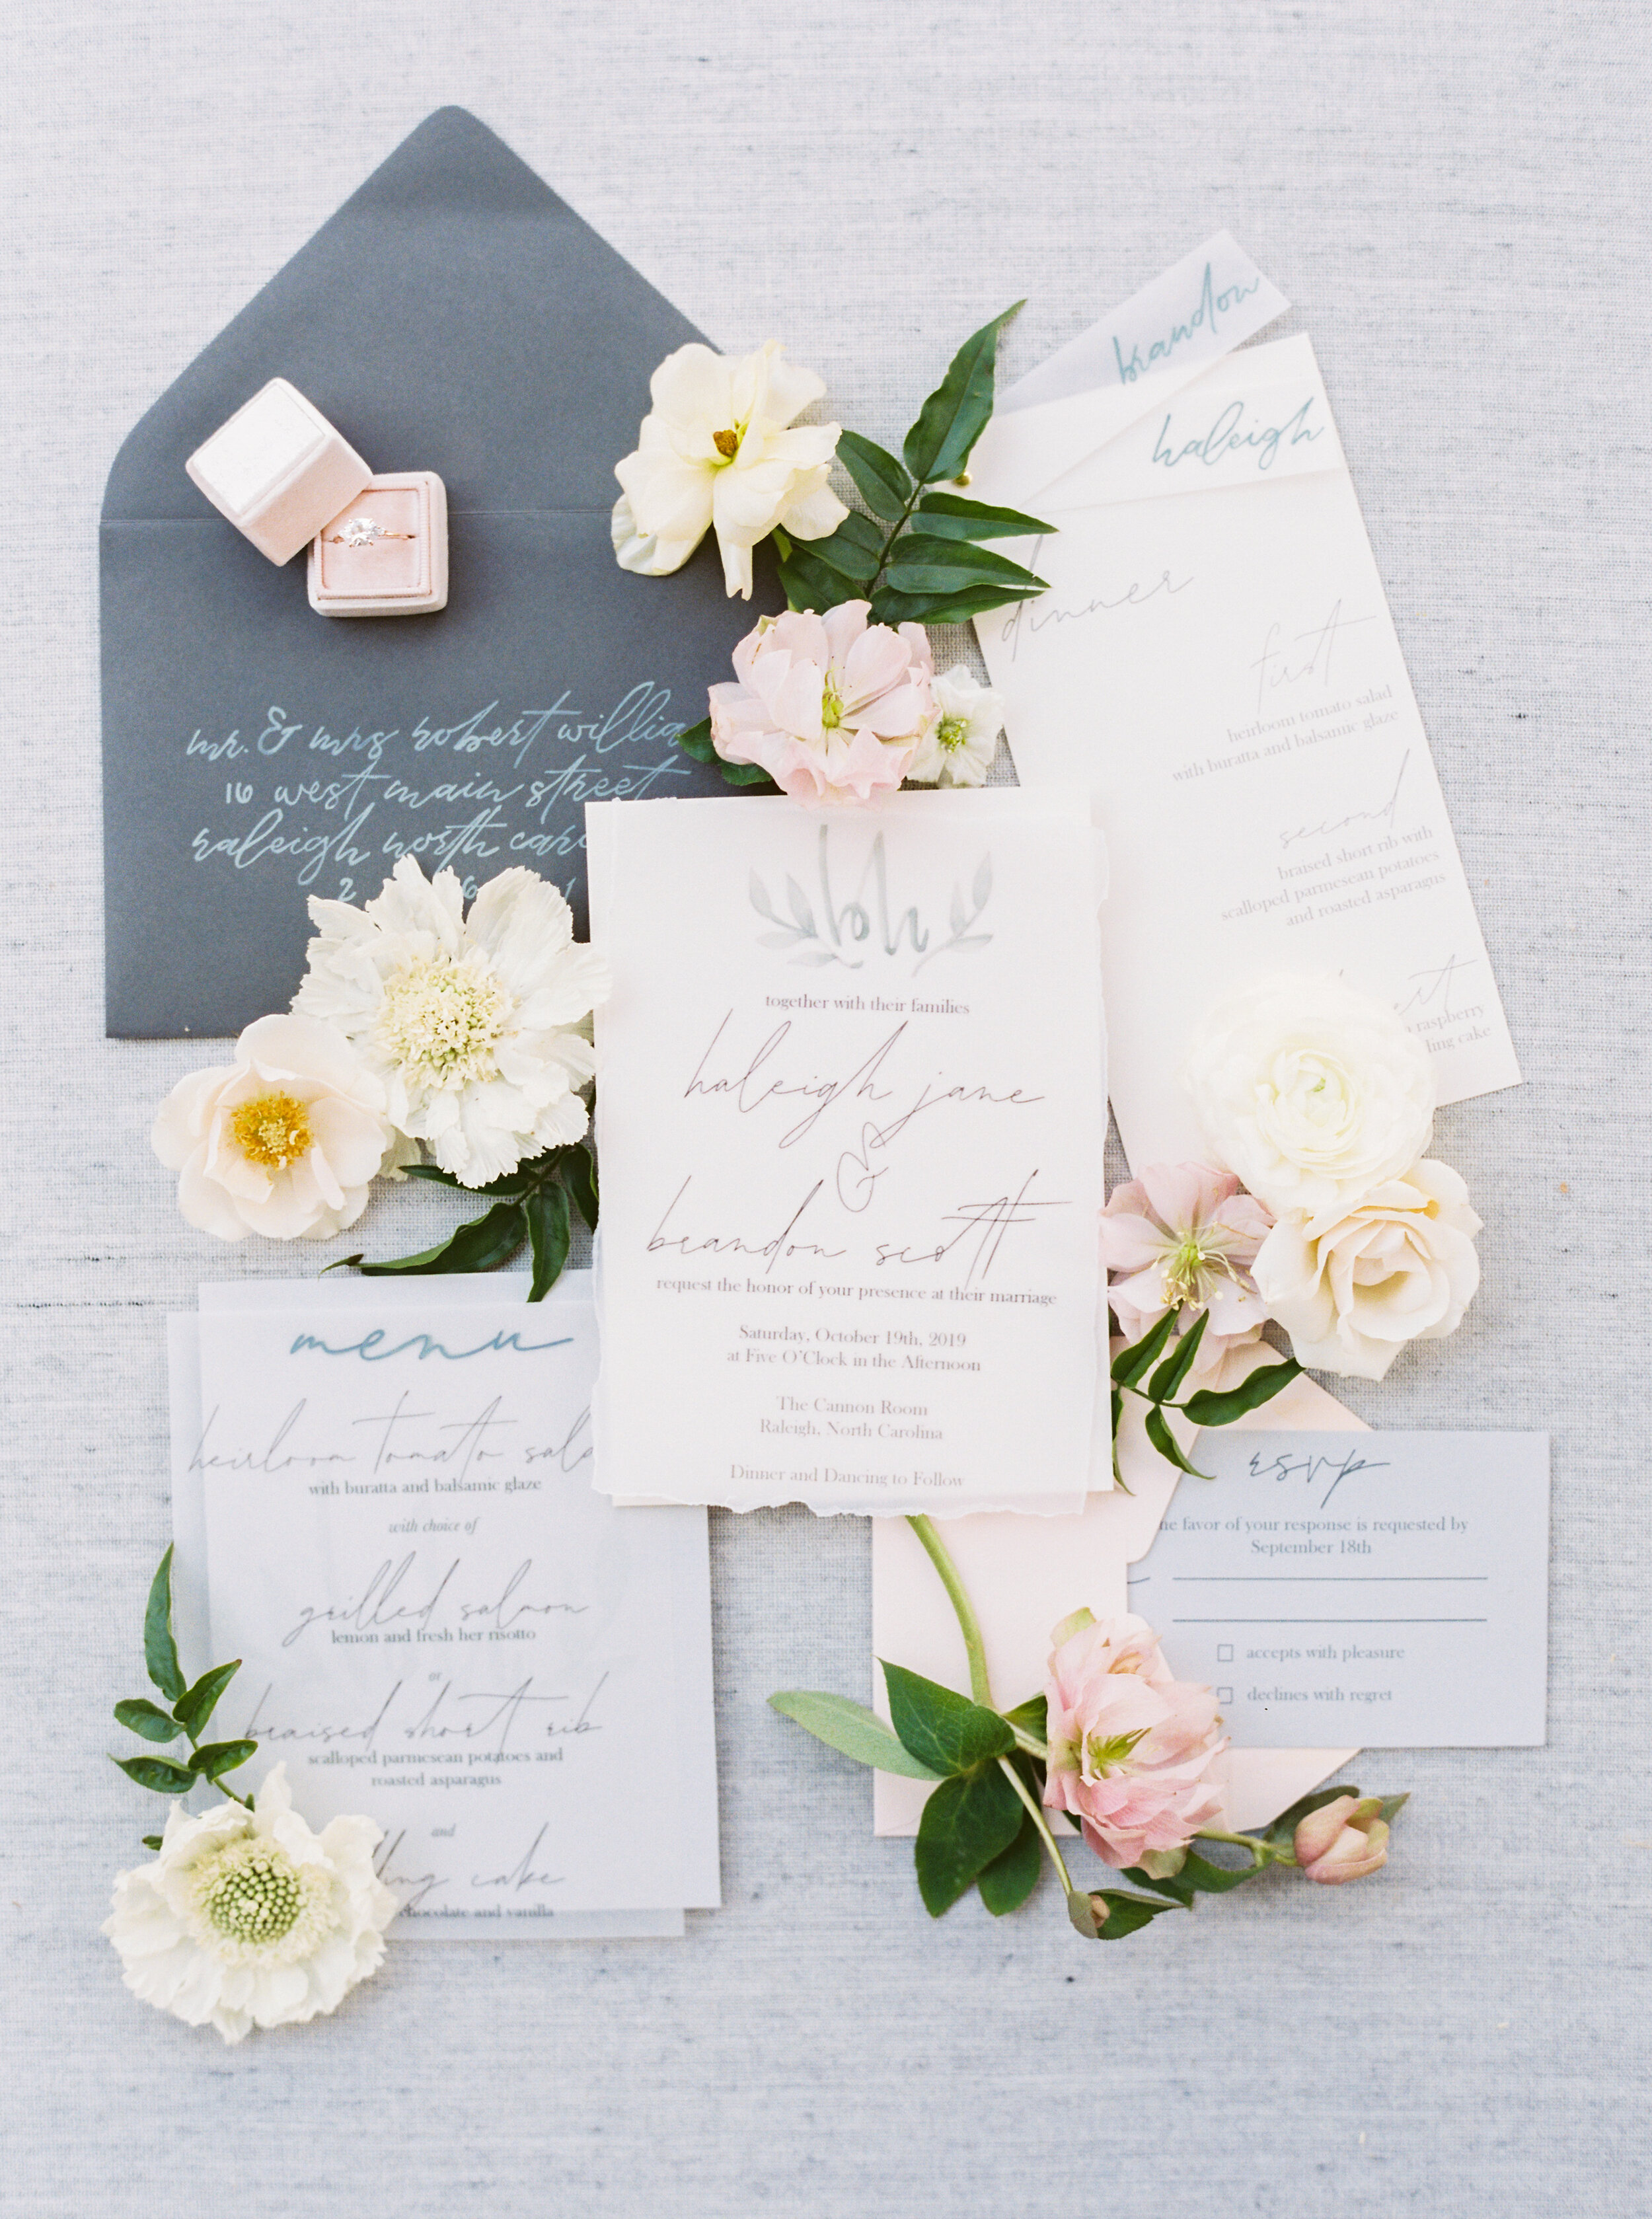 Haleigh _ amanda Castle photo.Ivory___Lace_Events-Styled_Shoot-001 copy.jpg